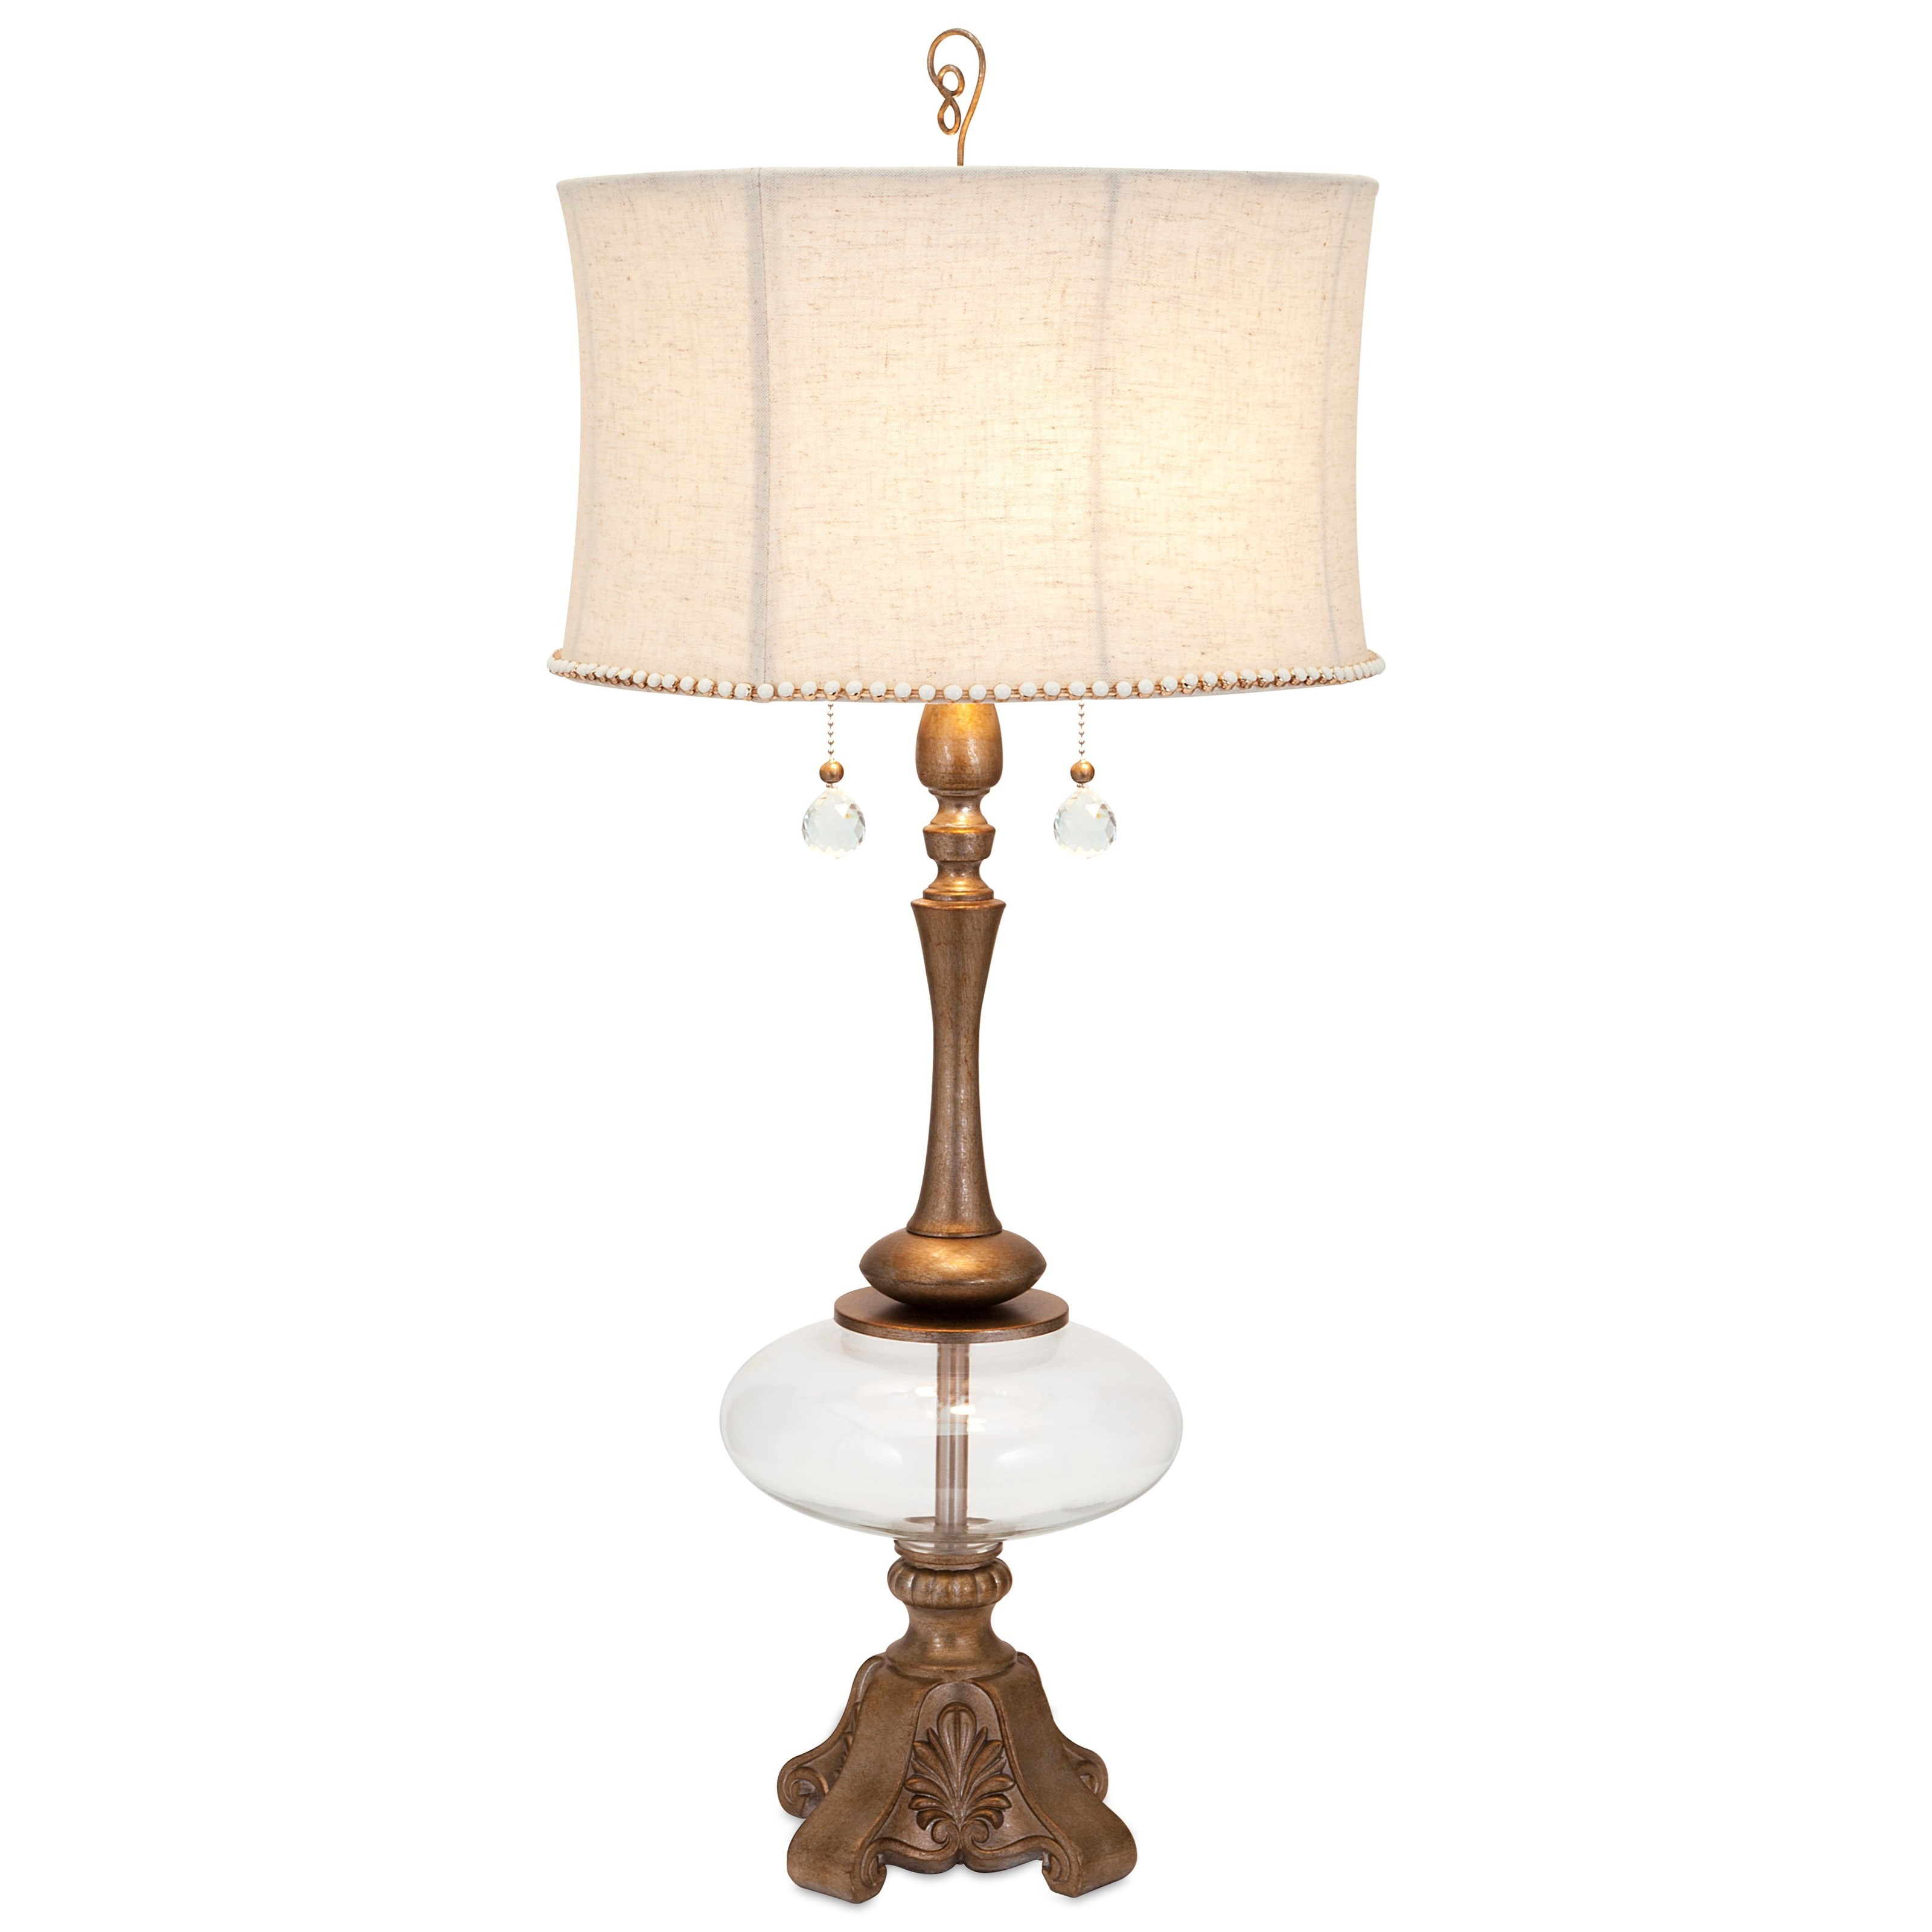 Becky Fletcher Scarlett Table Lamp by IMAX Worldwide Home at Alison Craig Home Furnishings